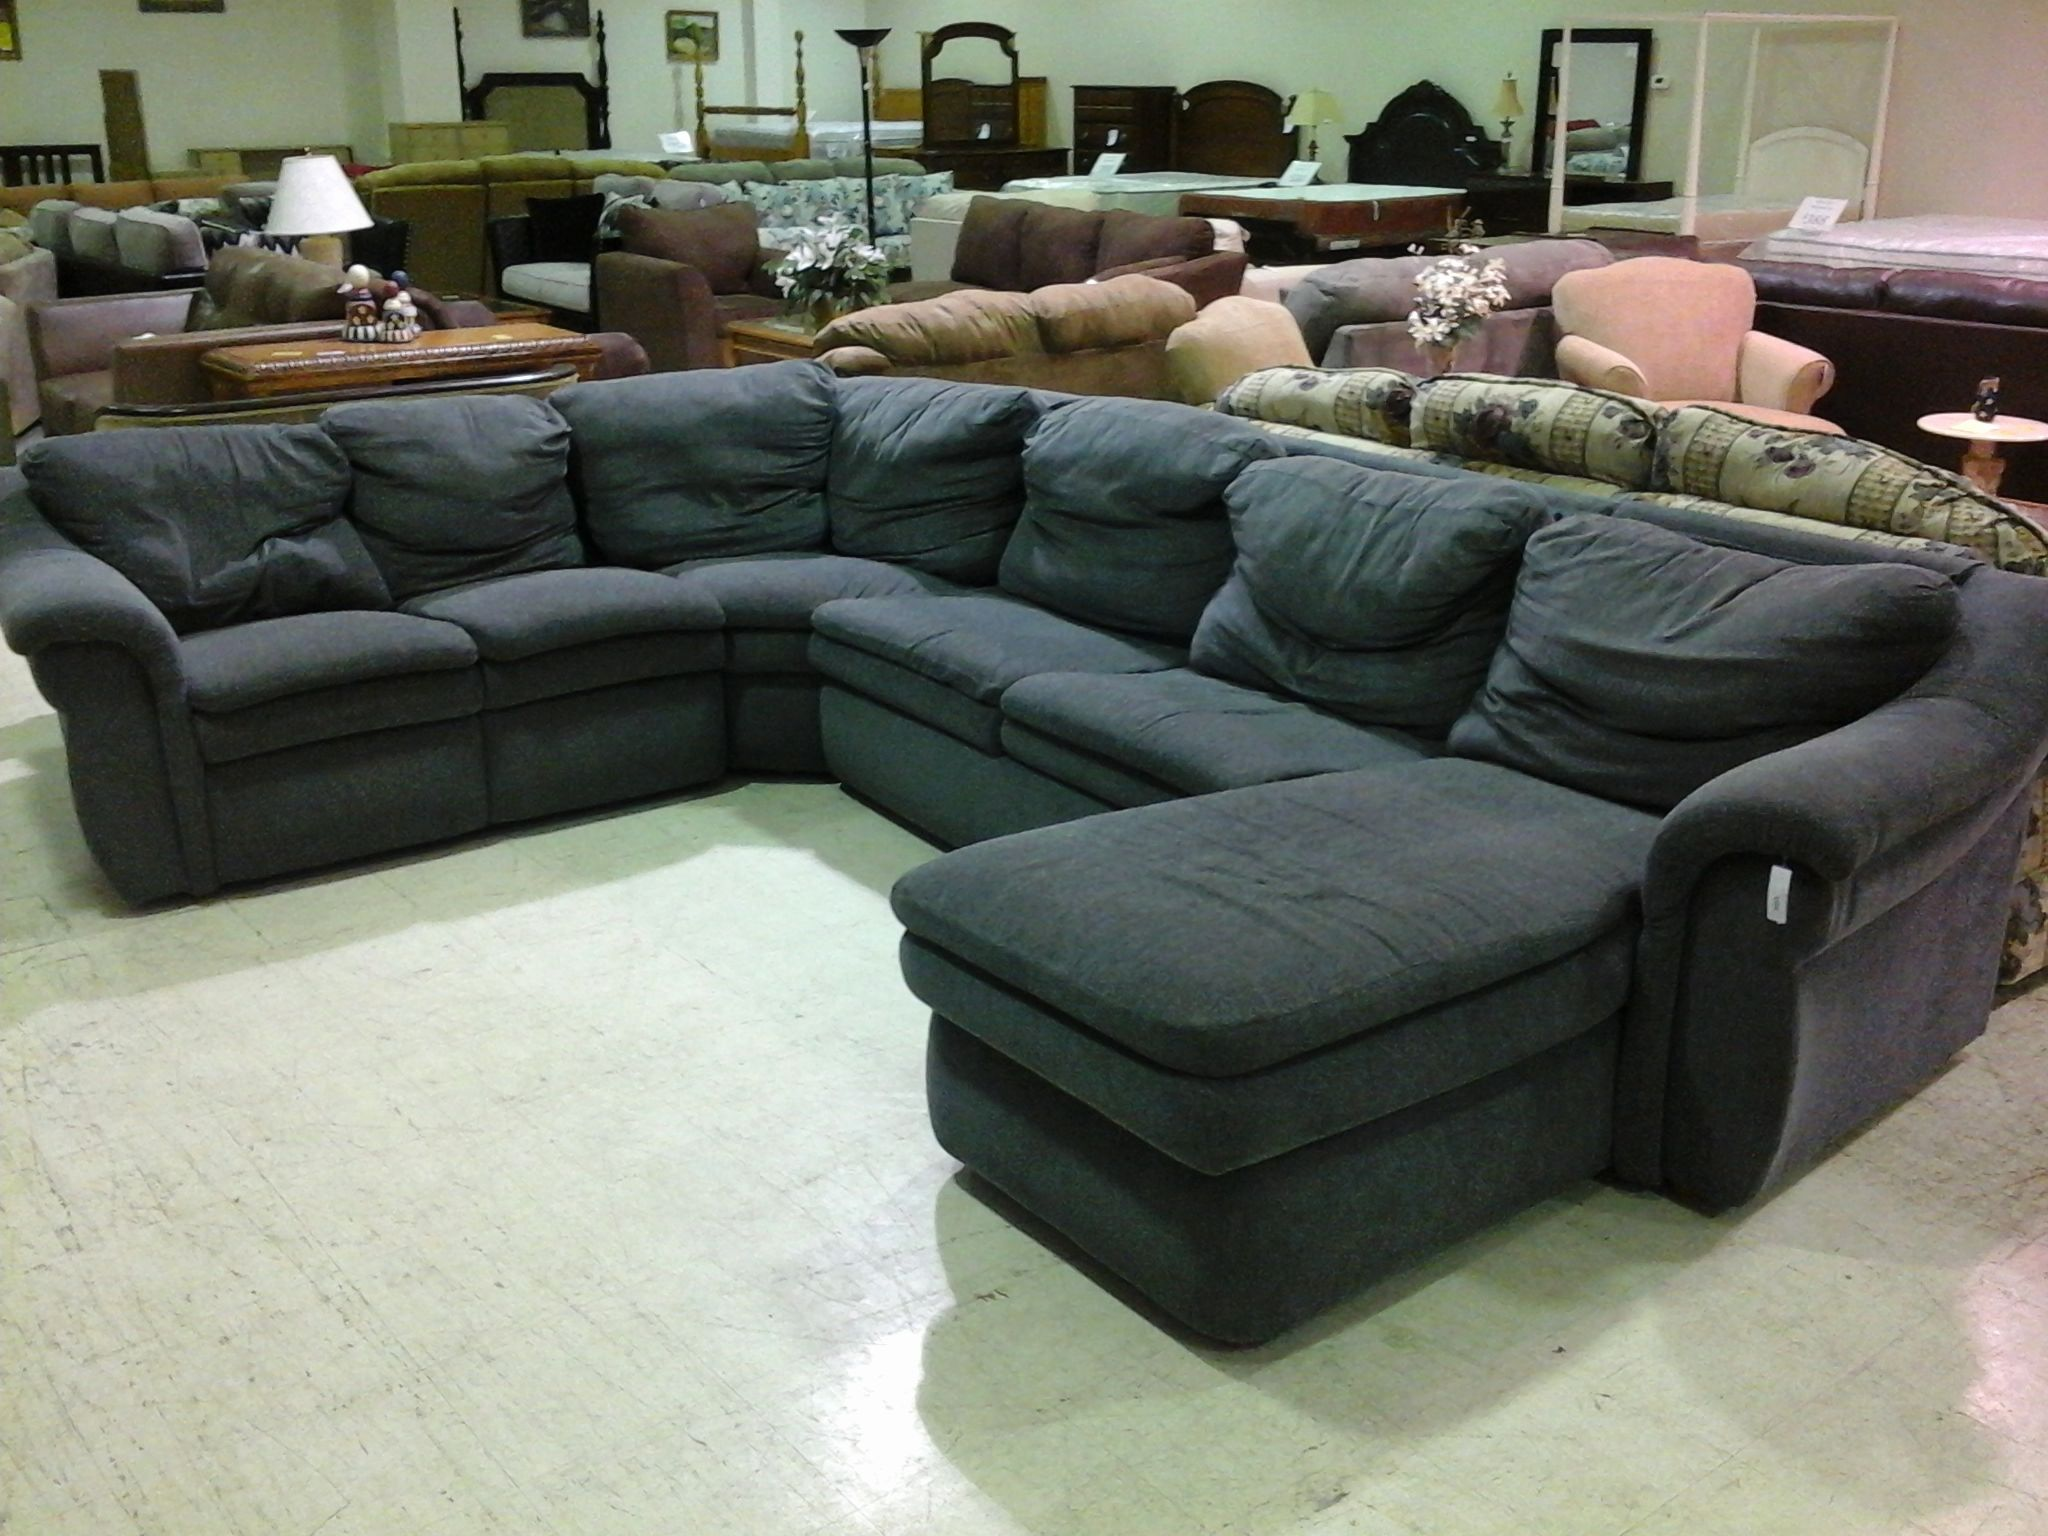 Ideas Extra Large Sectional Sofas With Chaise Pics Cute U Shaped Sofa Home Interior